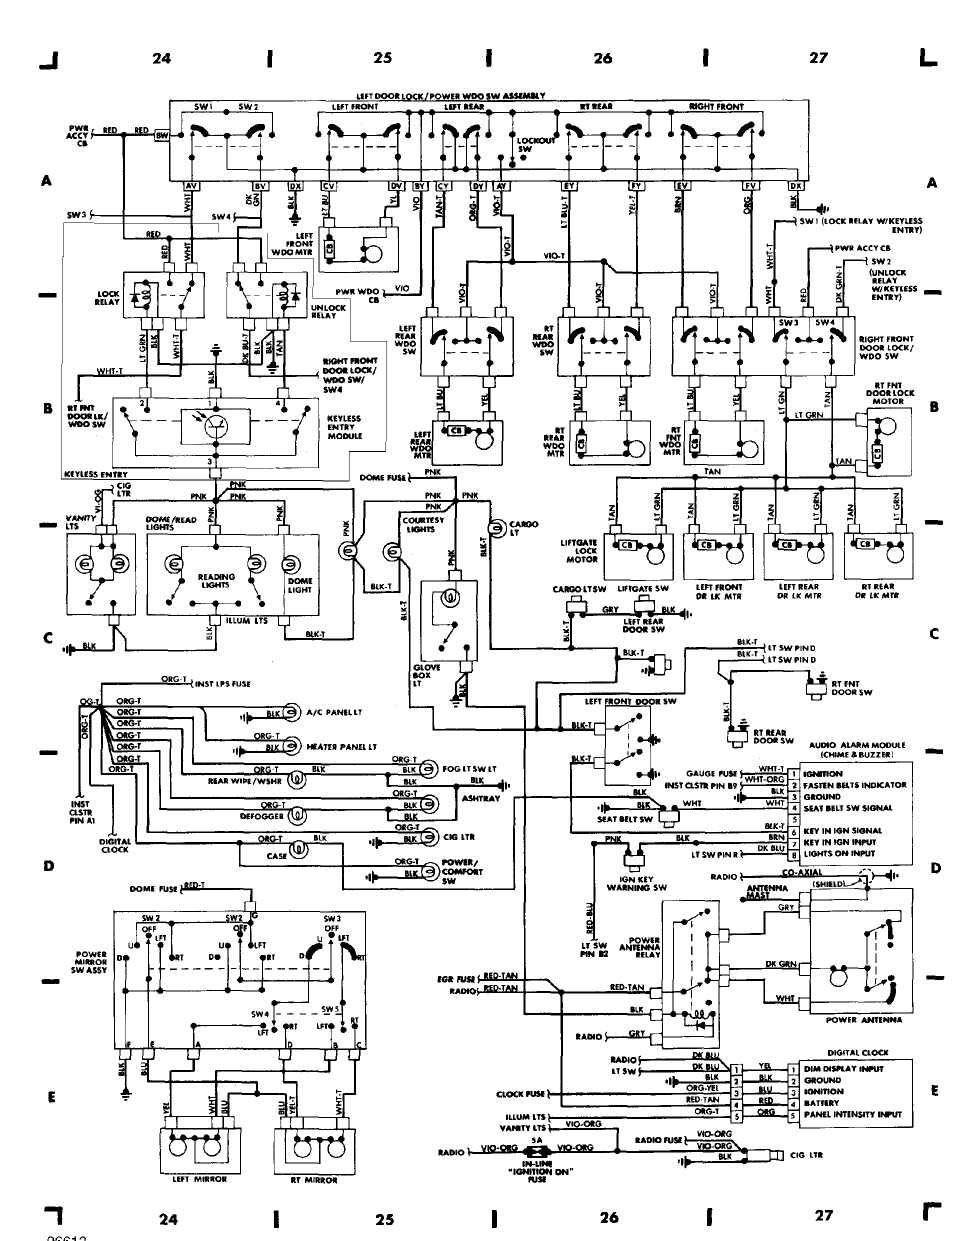 wiring_diagrams_html_61f5e0ad wiring diagrams 1984 1991 jeep cherokee (xj) jeep 1992 Jeep Cherokee Owners Manual at mifinder.co